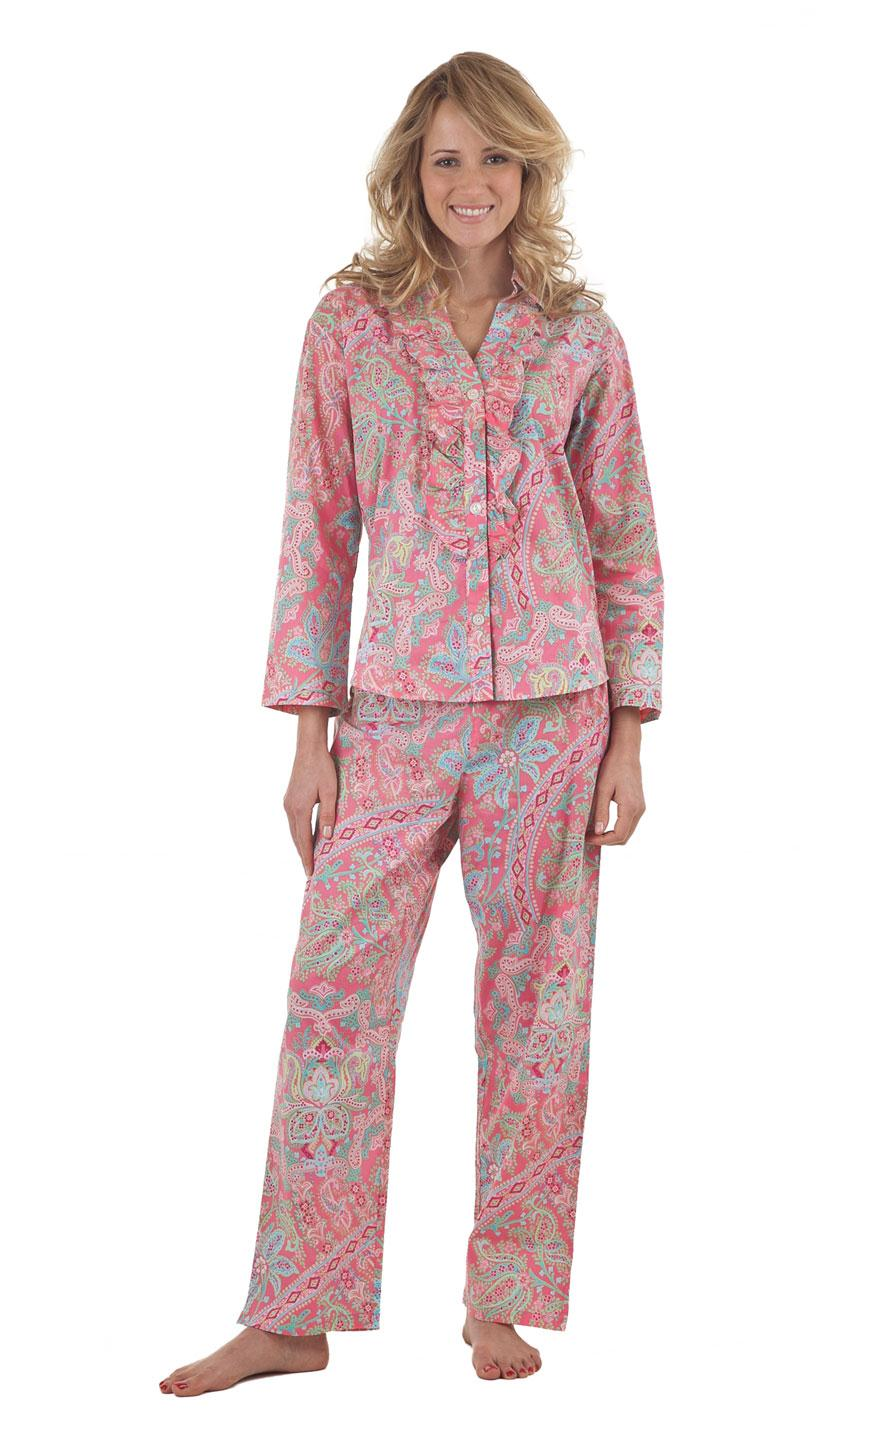 You can choose from a vast variety of trendy nightwear for women ranging from nighties to pajamas, shorts, nightsuit sets, robes, baby doll dresses, night shirts and tanks. With a set for everybody, choose what you feel will allow you to sleep comfortably.